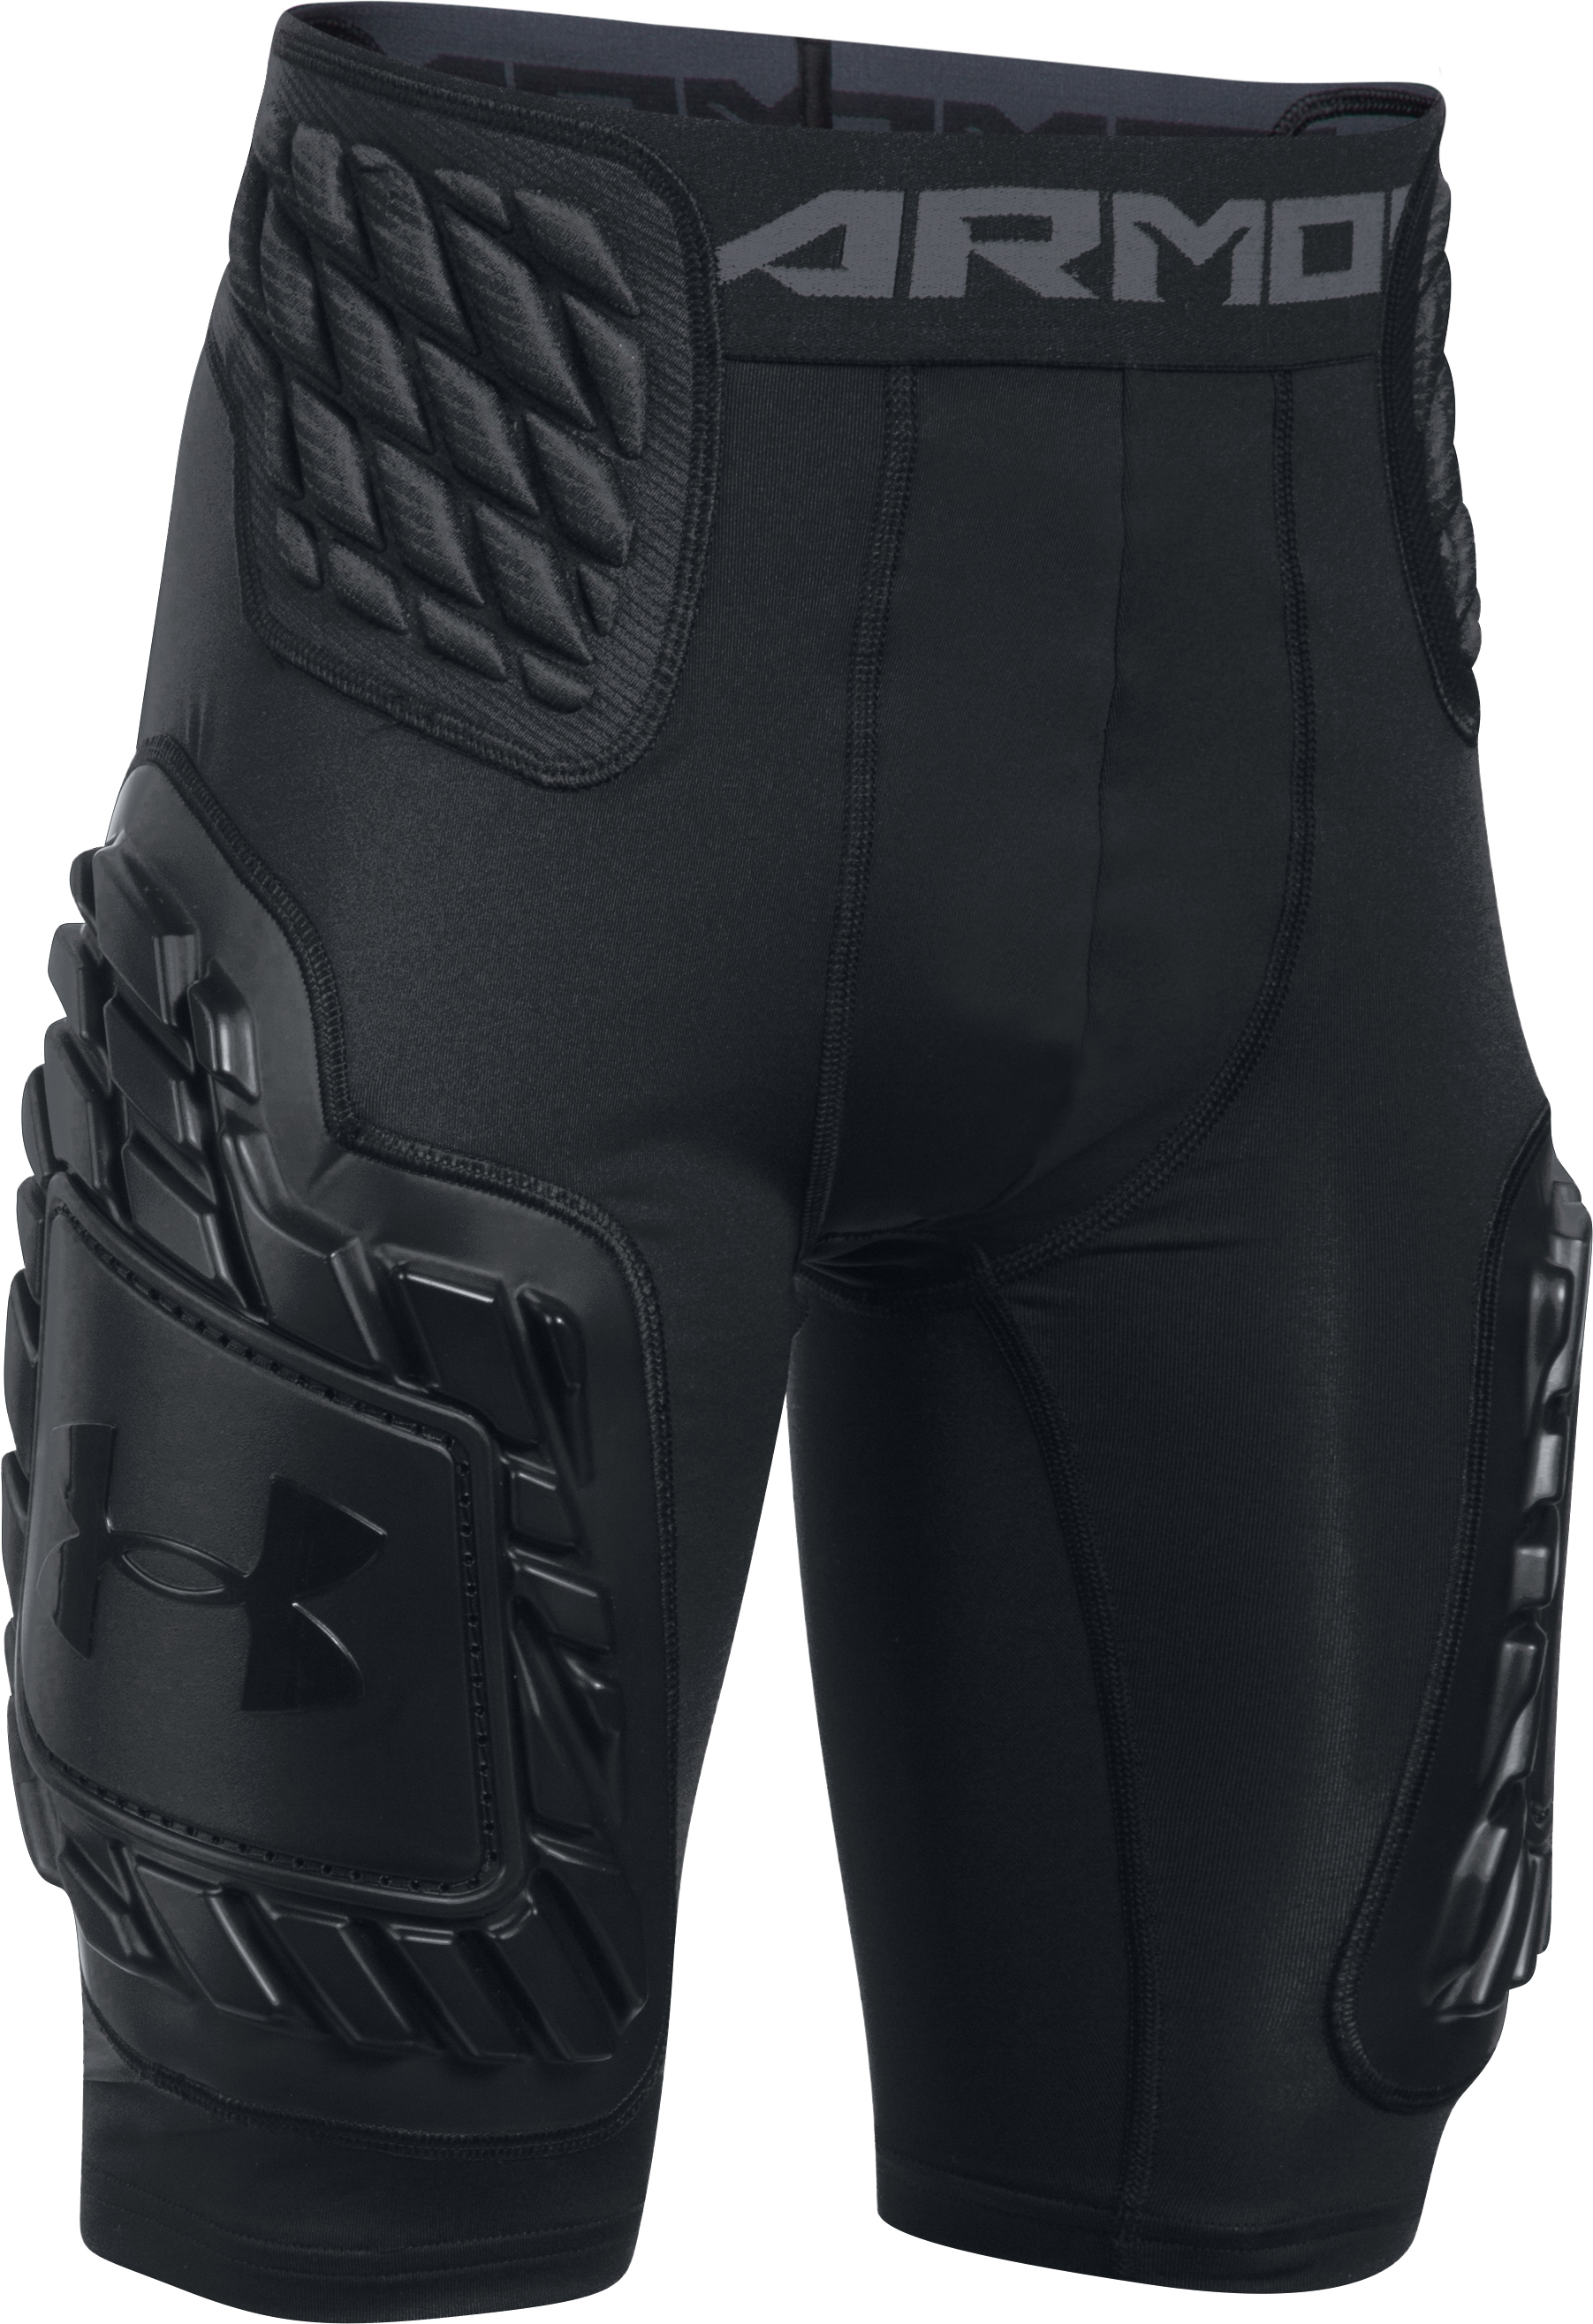 Under Armour Youth Gameday Armour Girdle